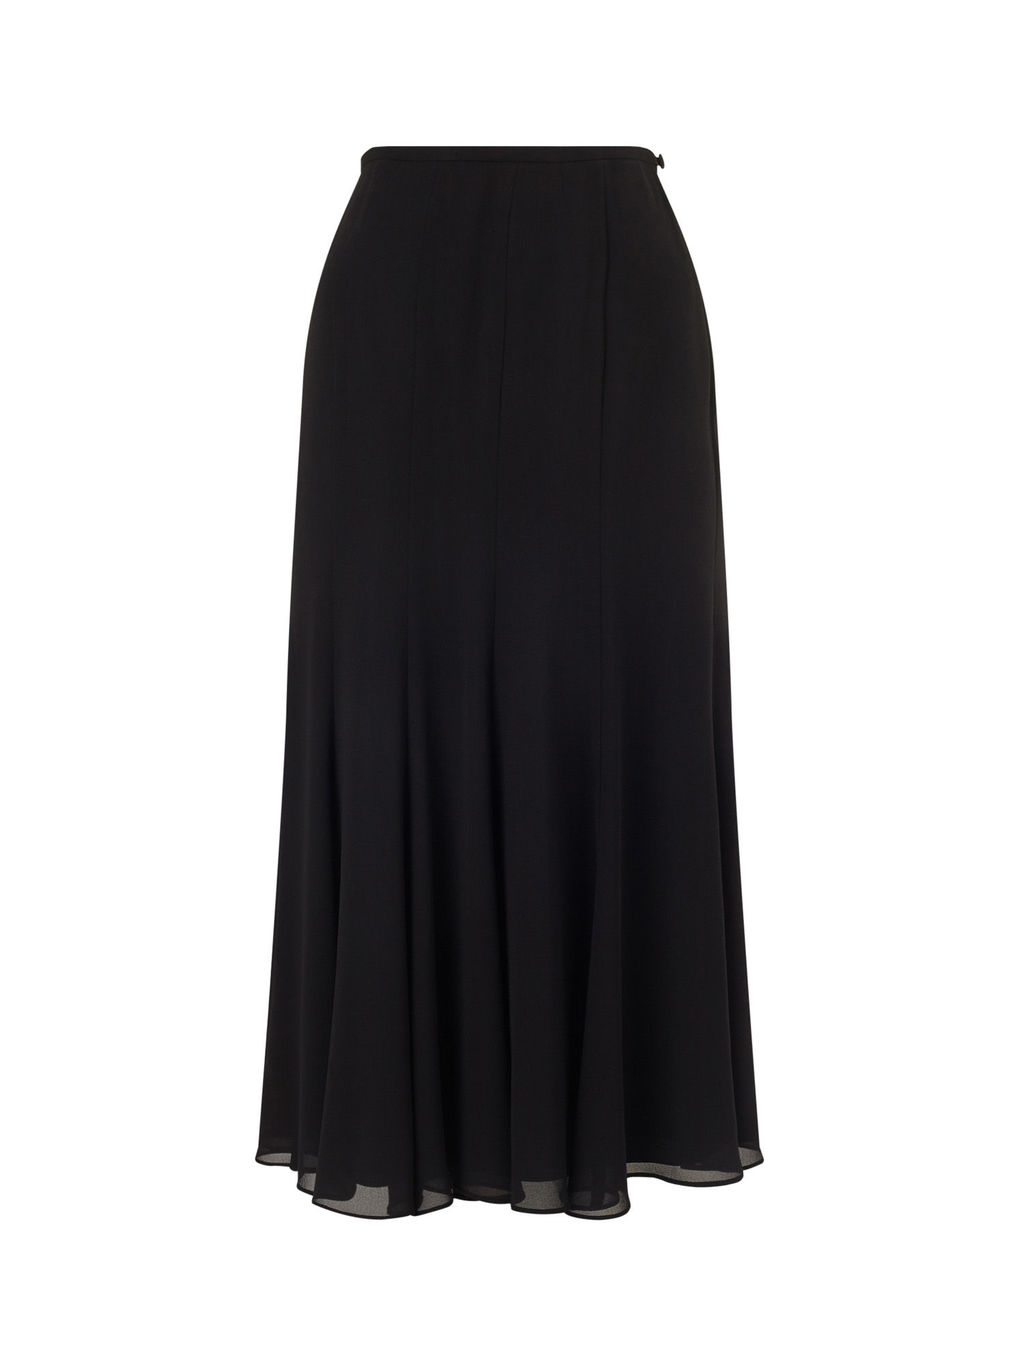 Multi Godet Skirt - pattern: plain; length: ankle length; fit: loose/voluminous; waist: high rise; predominant colour: black; occasions: casual; style: maxi skirt; fibres: polyester/polyamide - 100%; texture group: crepes; pattern type: fabric; season: s/s 2016